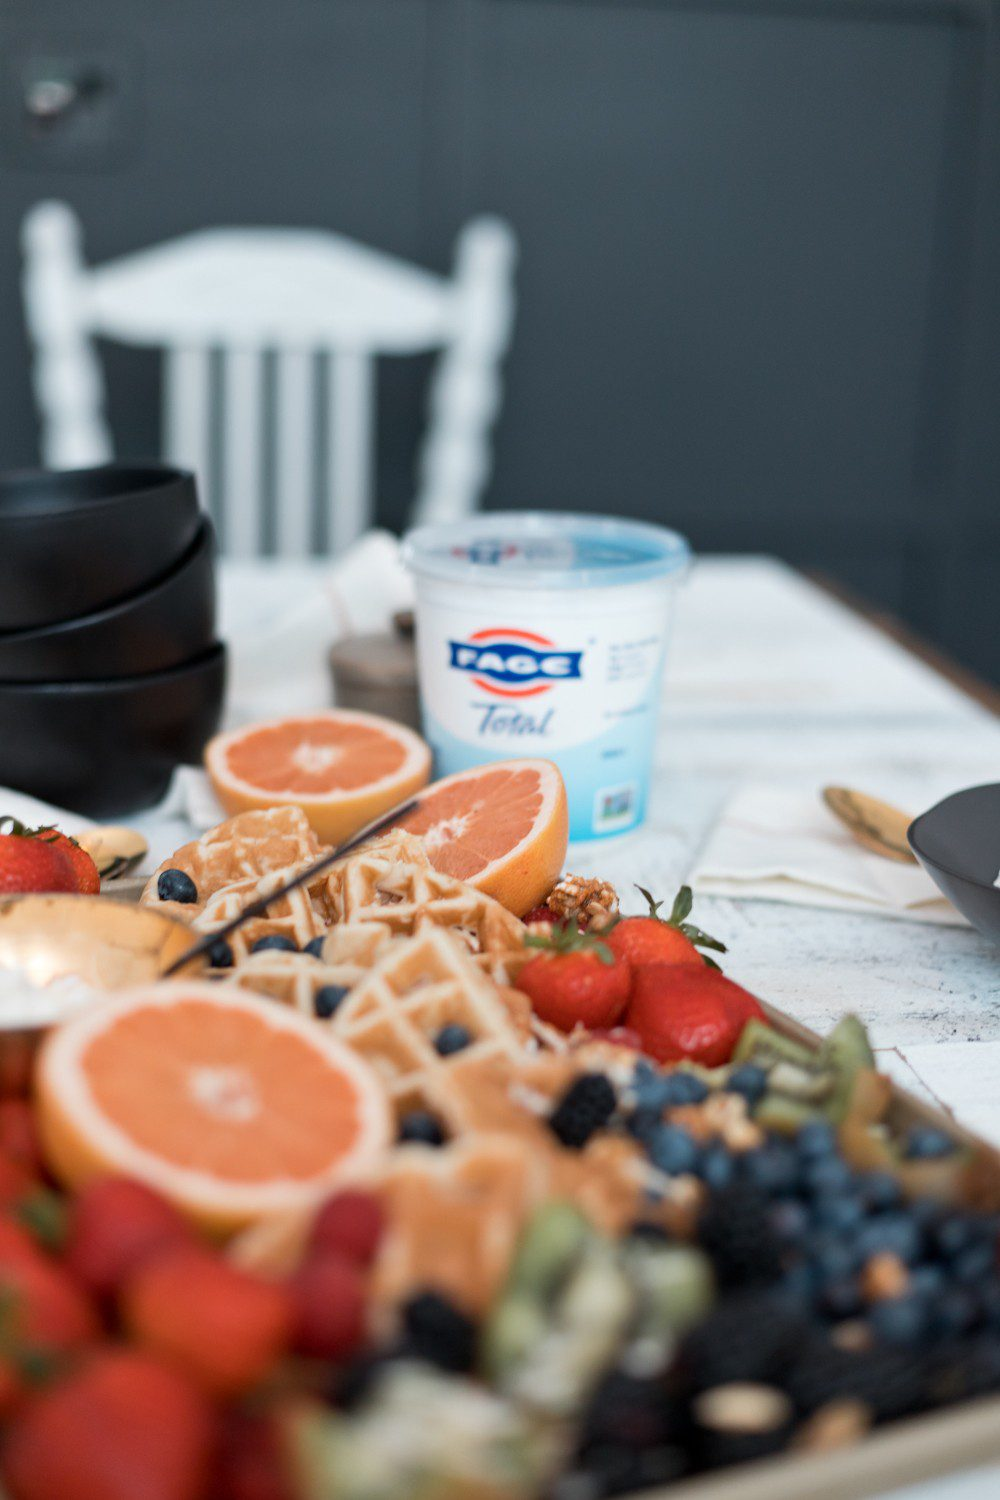 DIY Yogurt Parfait Recipe Ideas with Protein for Kids They'll Love by popular Florida lifestyle blog, Fresh Mommy: image of kiwis, strawberries, blackberries, blueberries, coconut, grapefruits, and waffles on a tray next to a container of Fage greek yogurt.